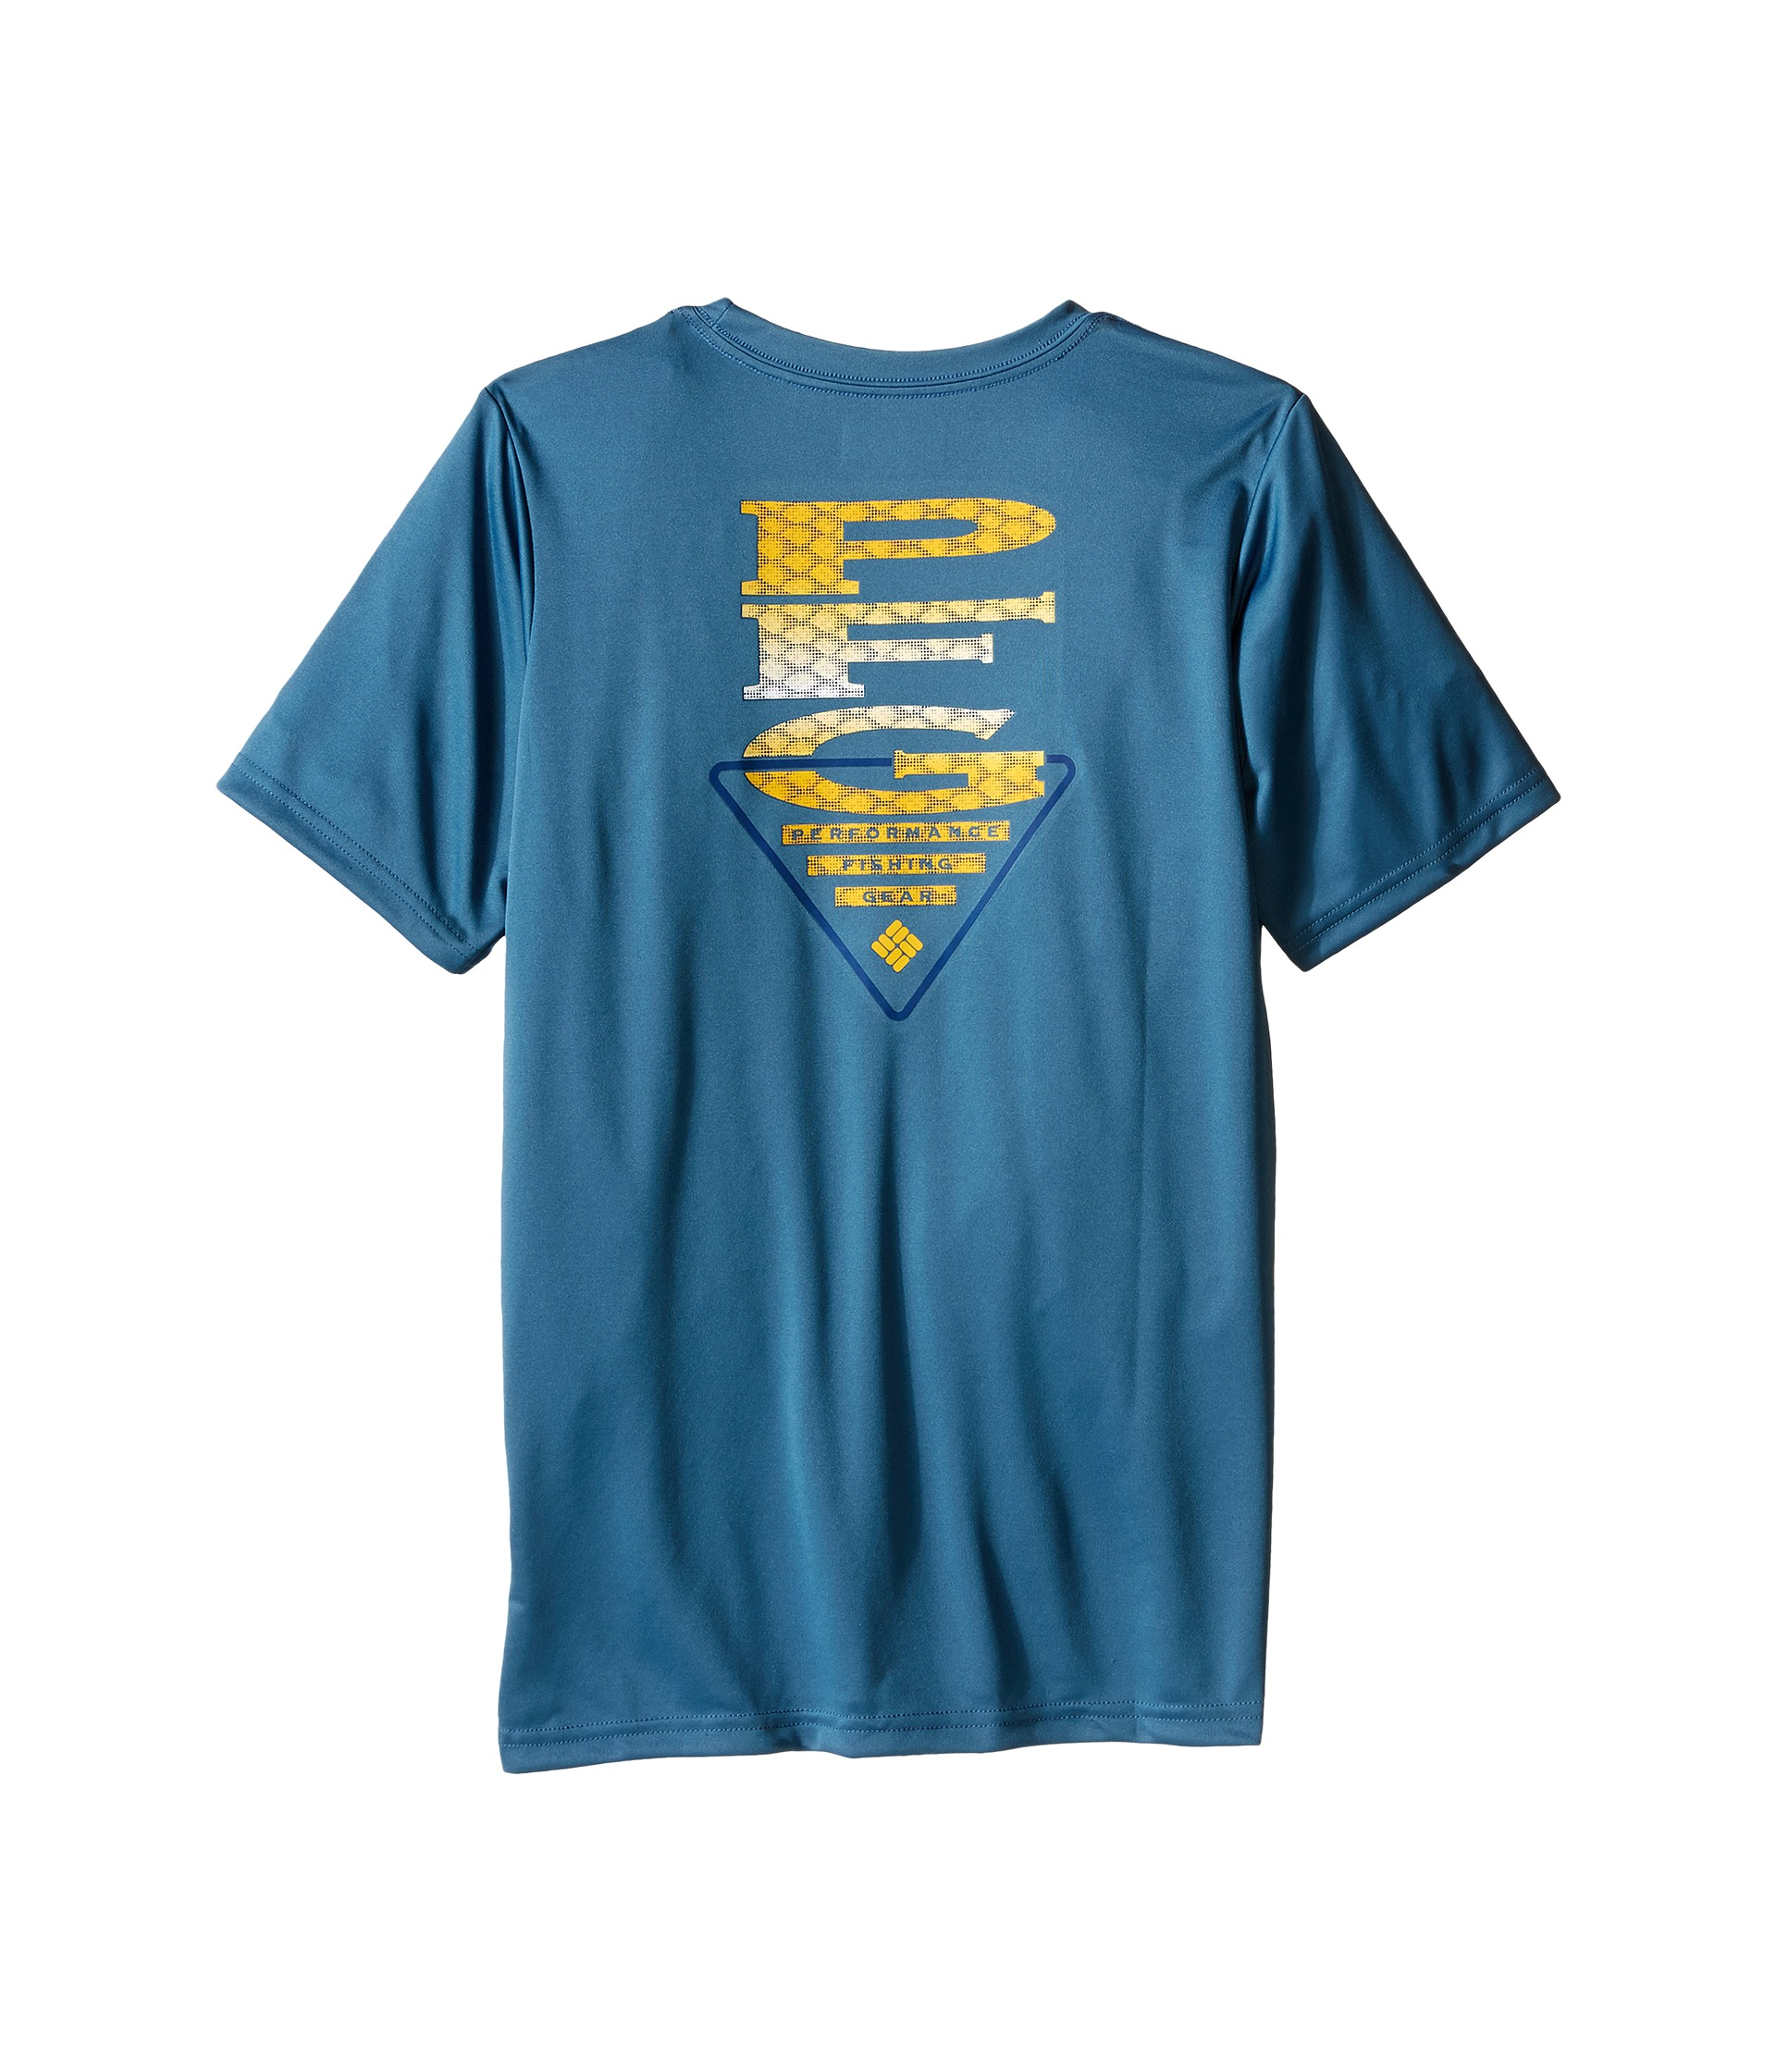 Columbia kids pfg stacked scales graphic tee little kids for Baby fishing shirts columbia